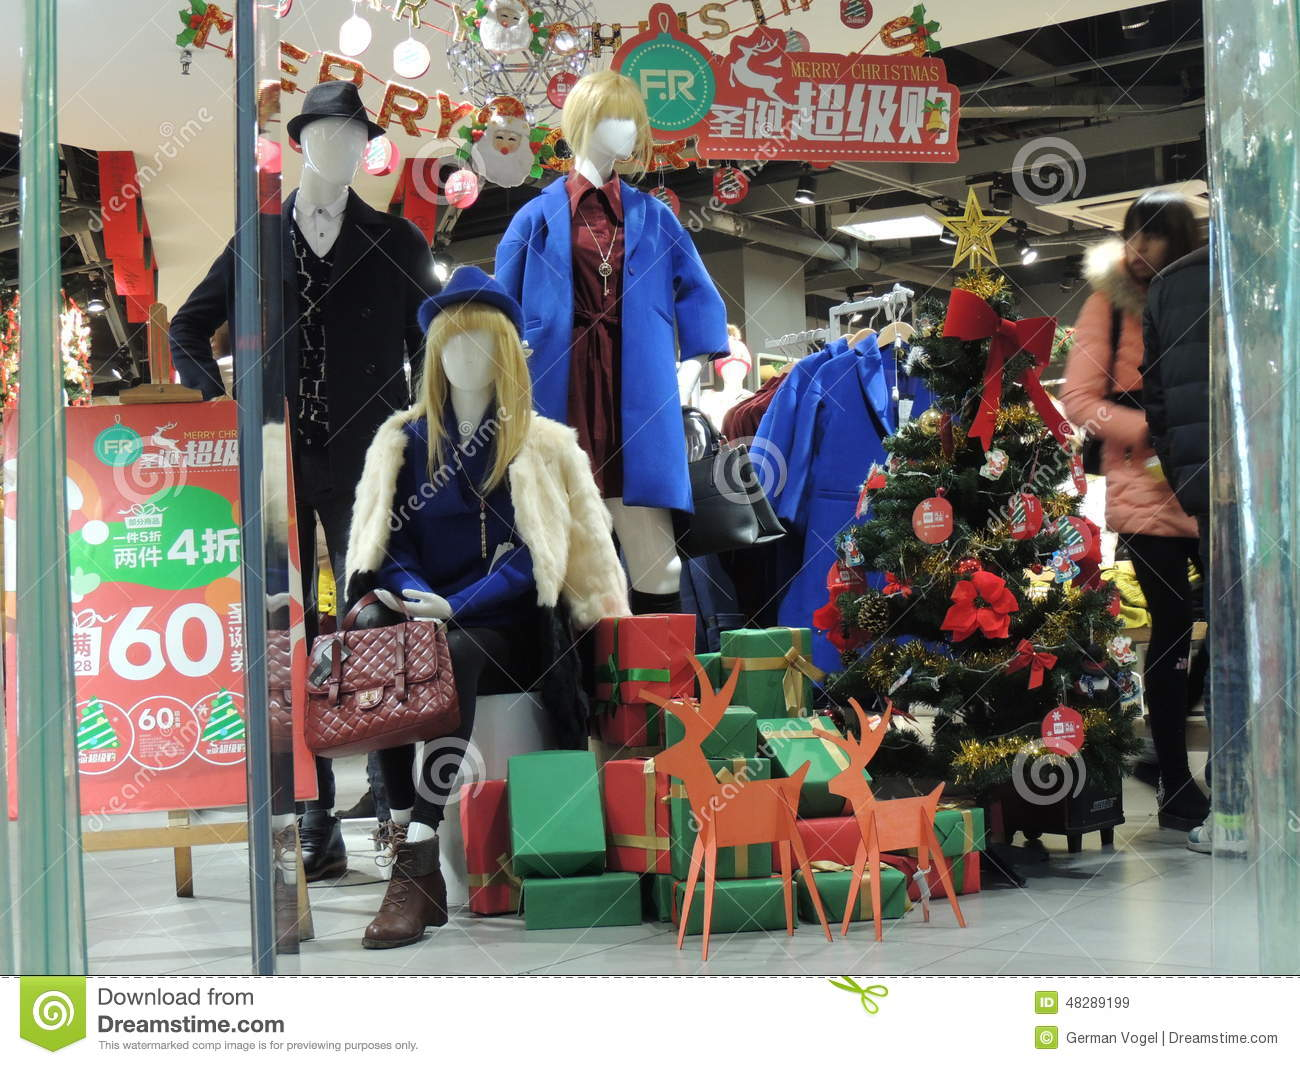 China clothes shop christmas decorations editorial stock for Salon xmas decorations